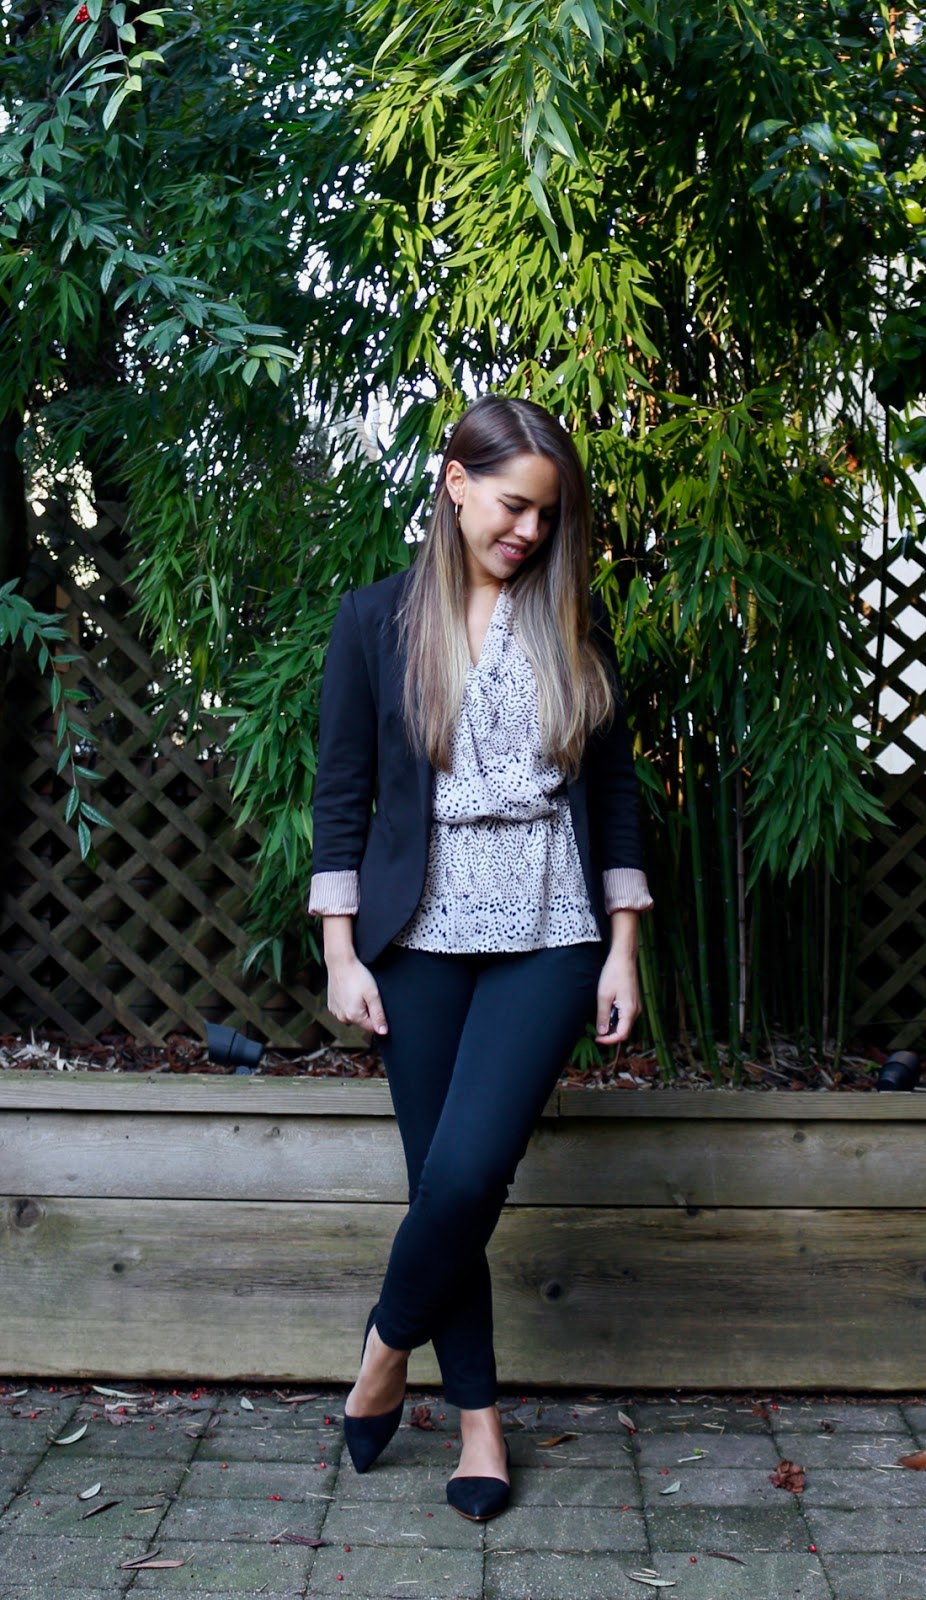 Jules in Flats - Peplum Wrap Top + Blazer (Business Casual Winter Workwear on a Budget)